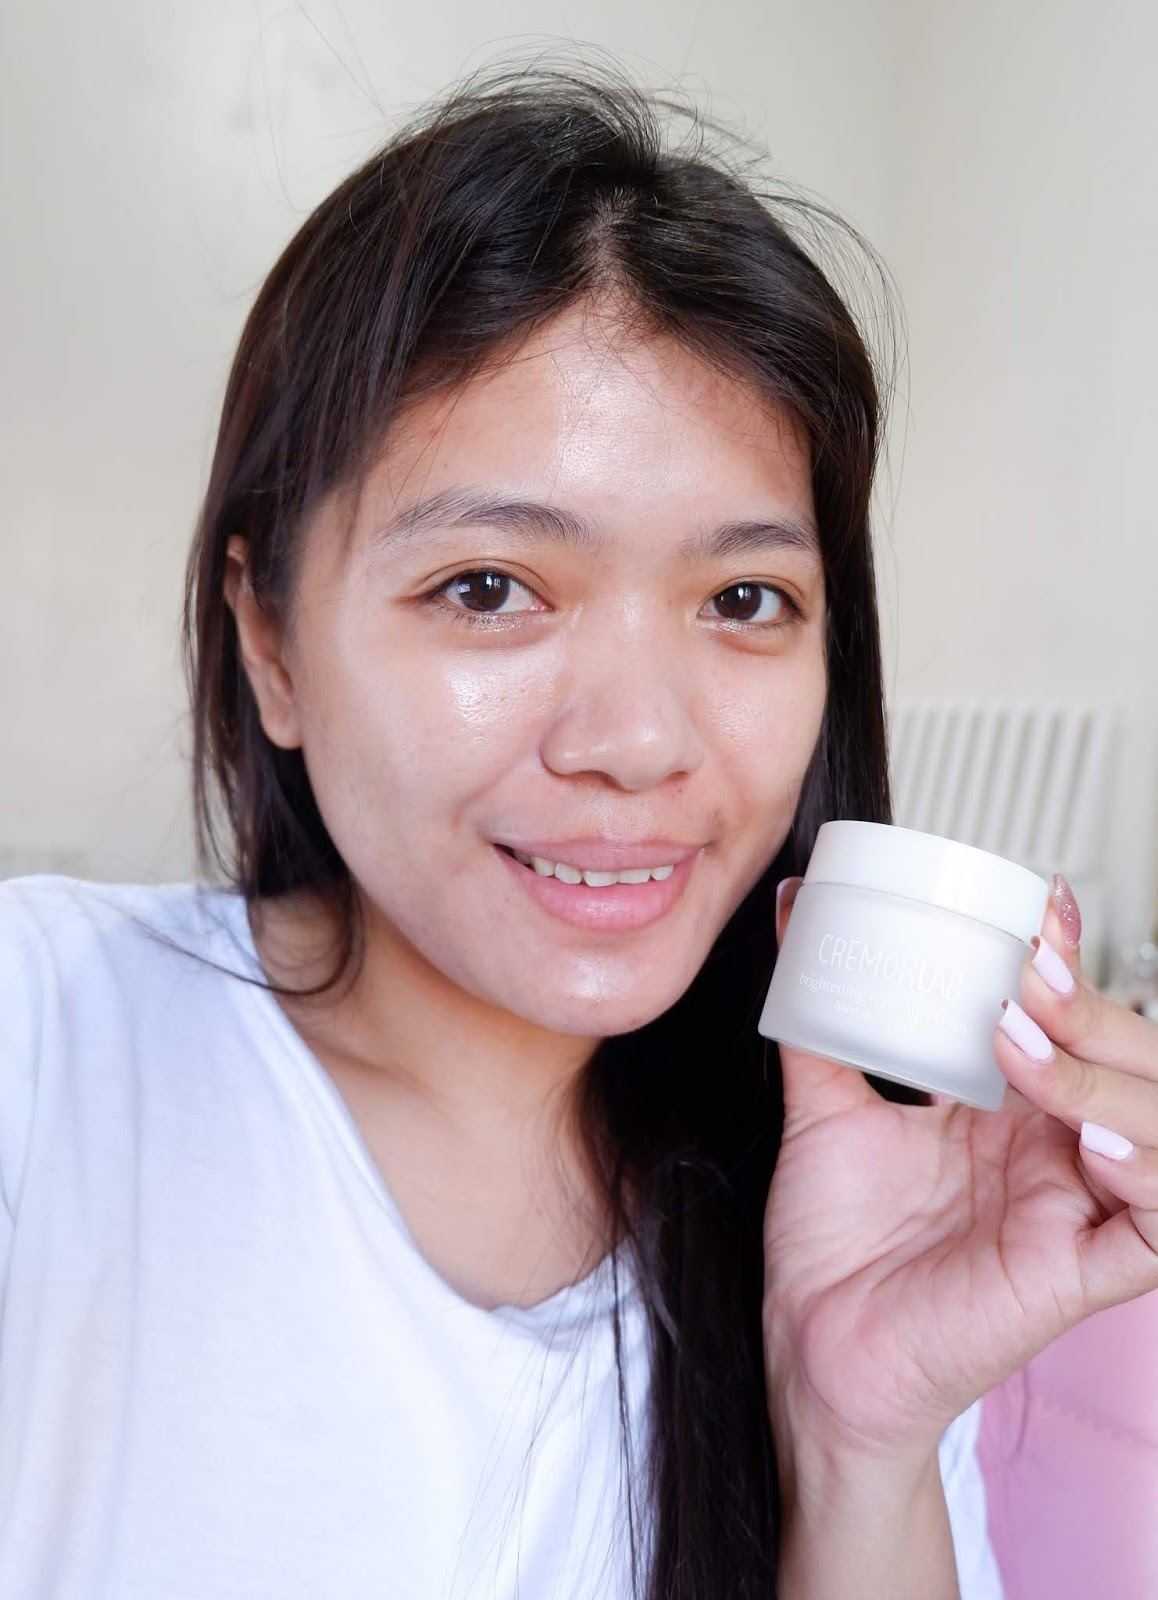 CREMORLAB - BRIGHTENING TONE-UP CREAM REVIEW